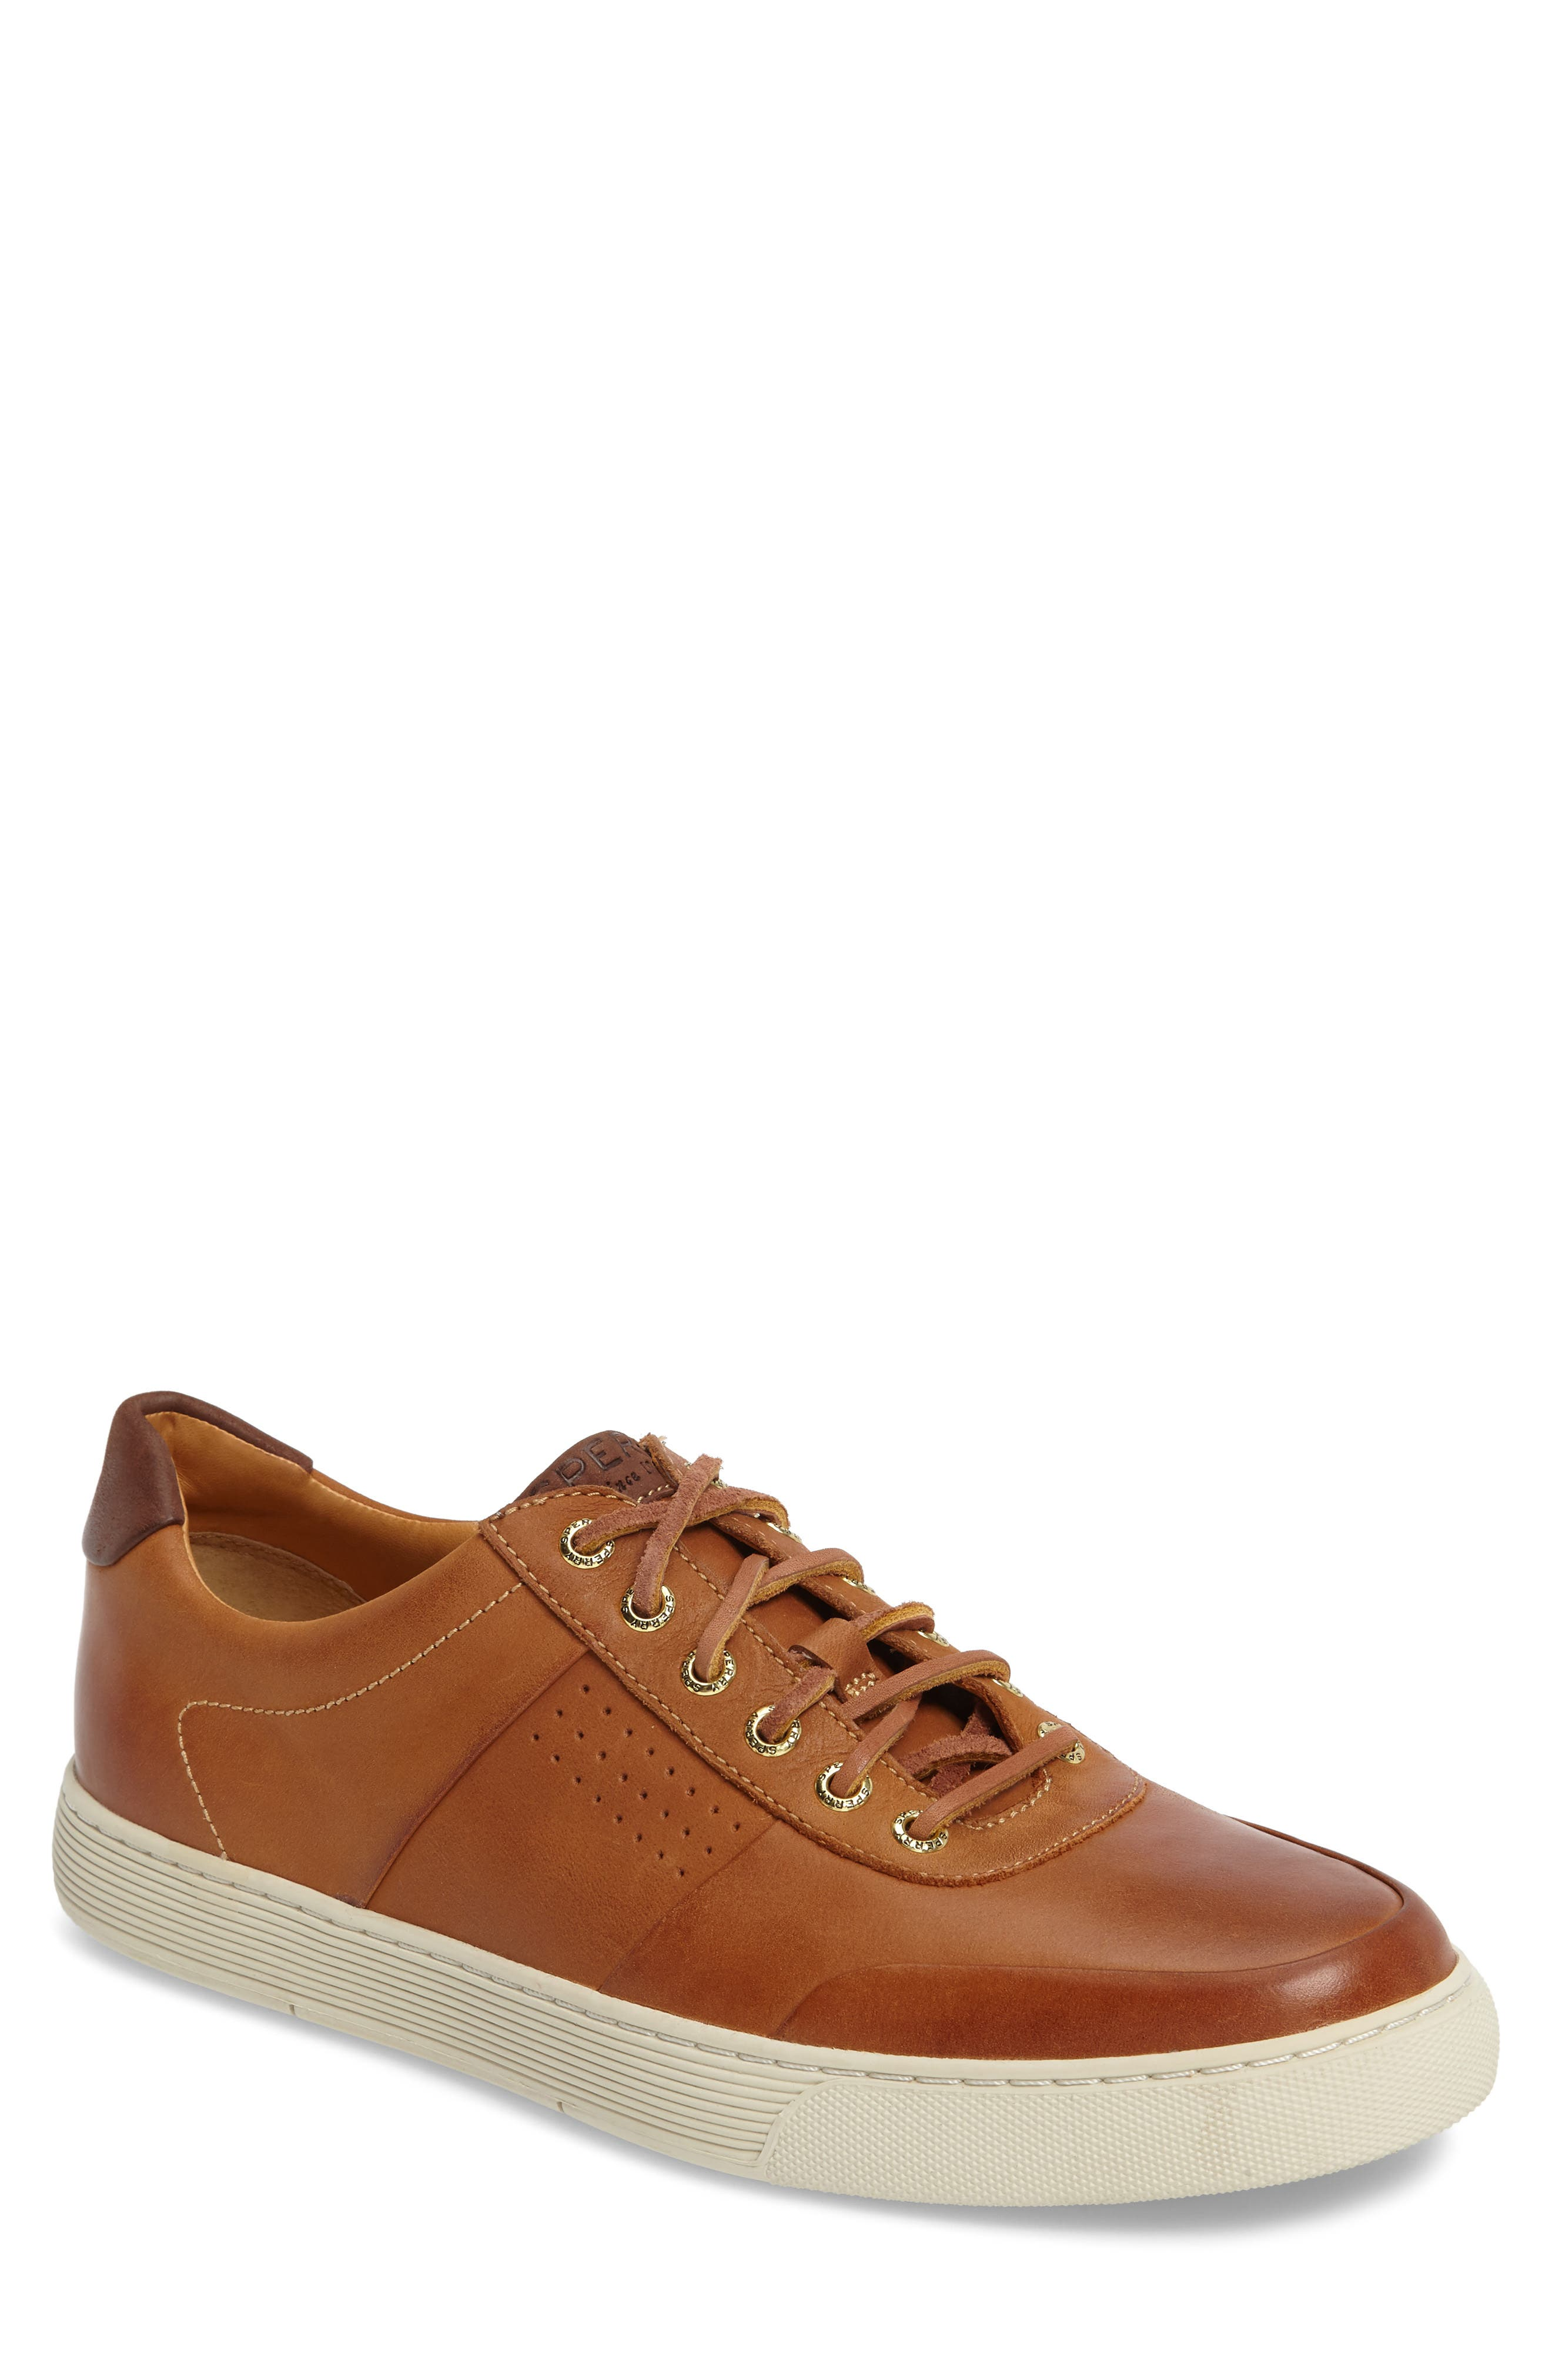 Gold Cup Sport Sneaker,                             Main thumbnail 2, color,